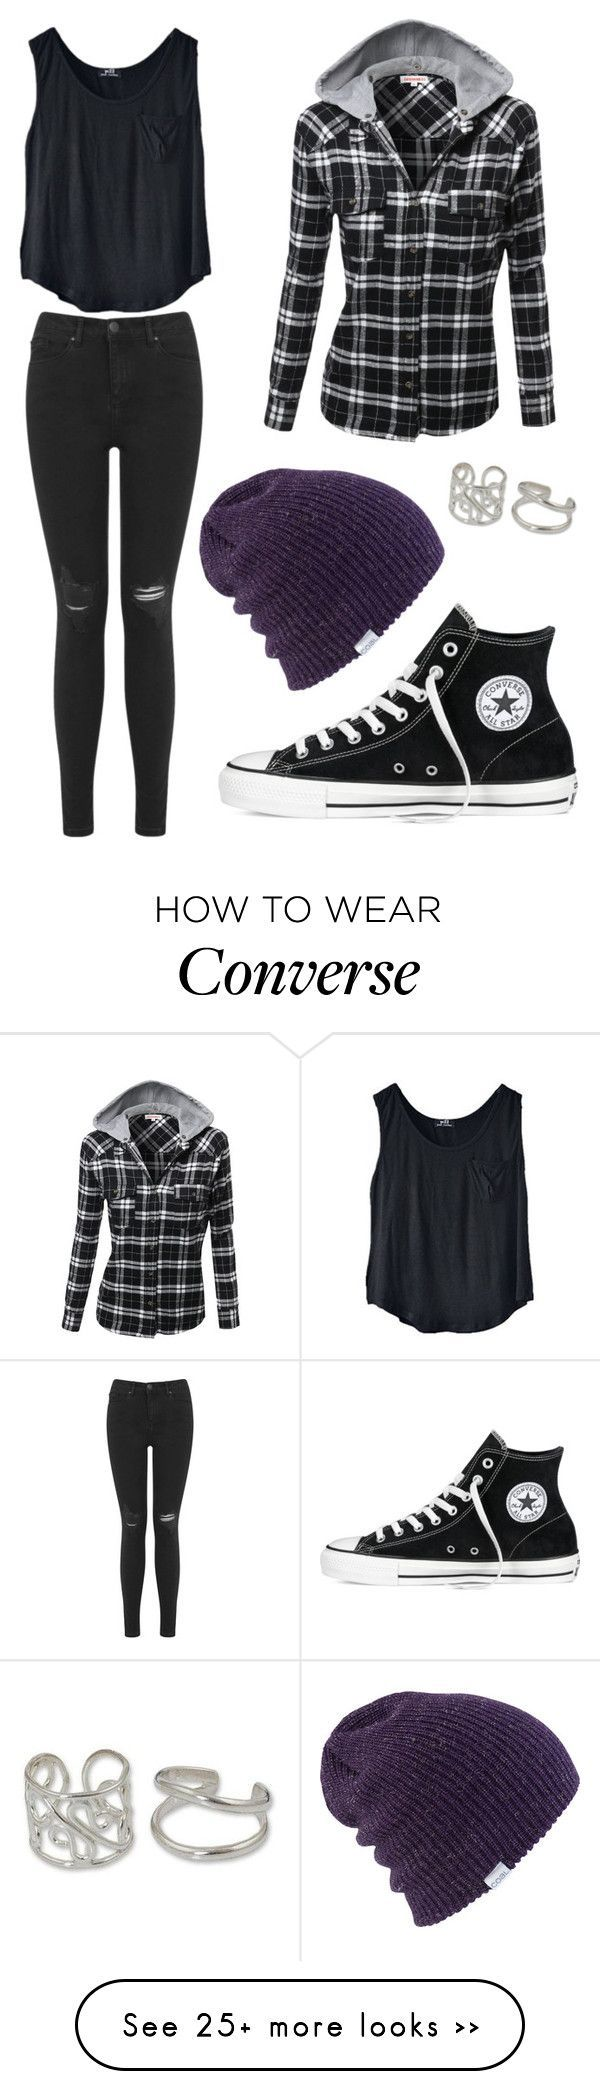 best converse style images on pinterest casual wear cute